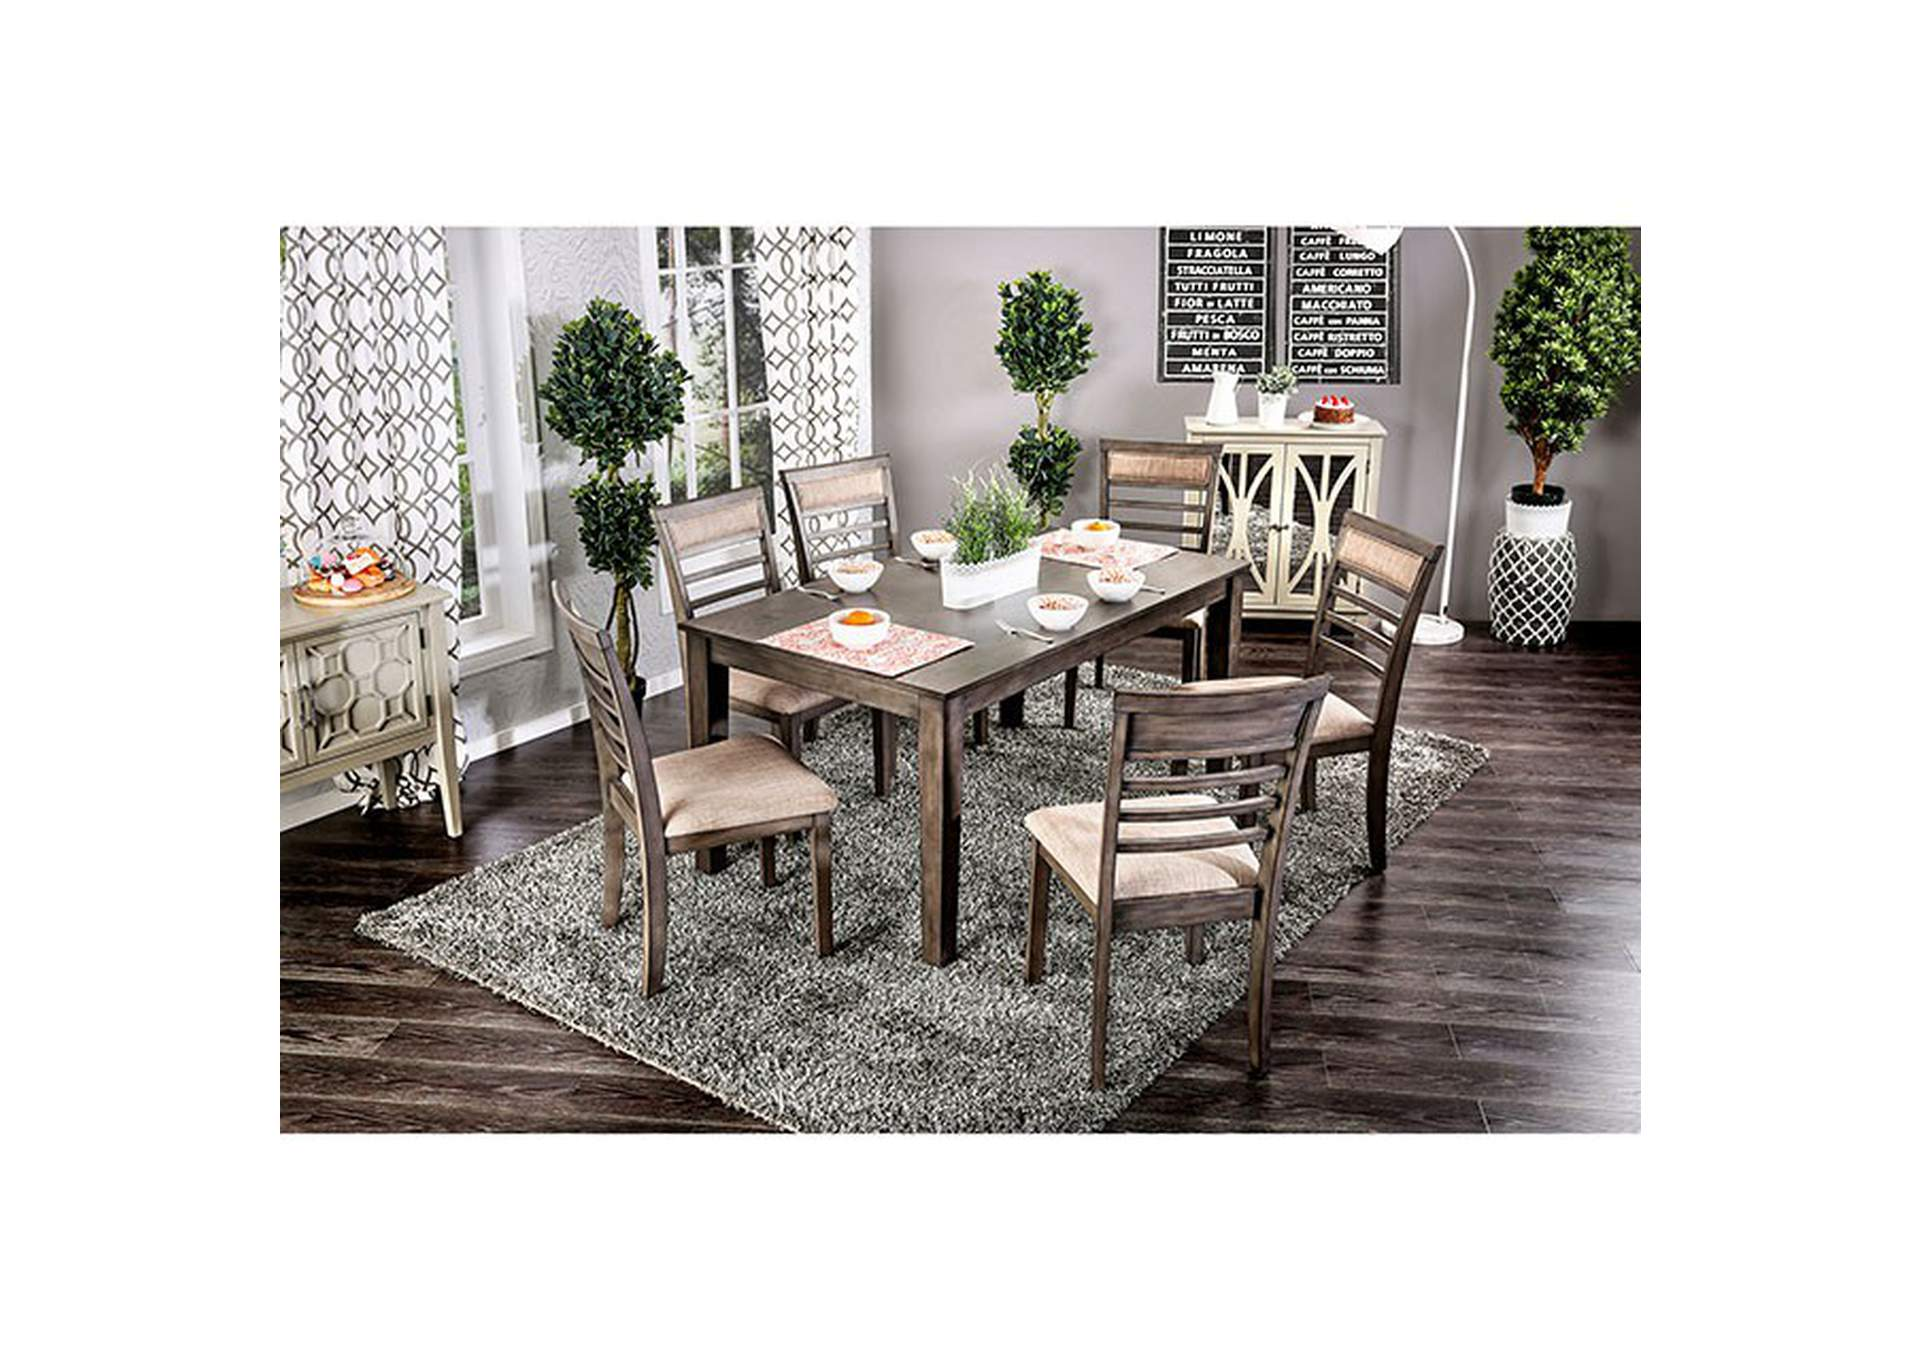 Taylah Weathered Gray 7 Piece Dining Set,Furniture of America